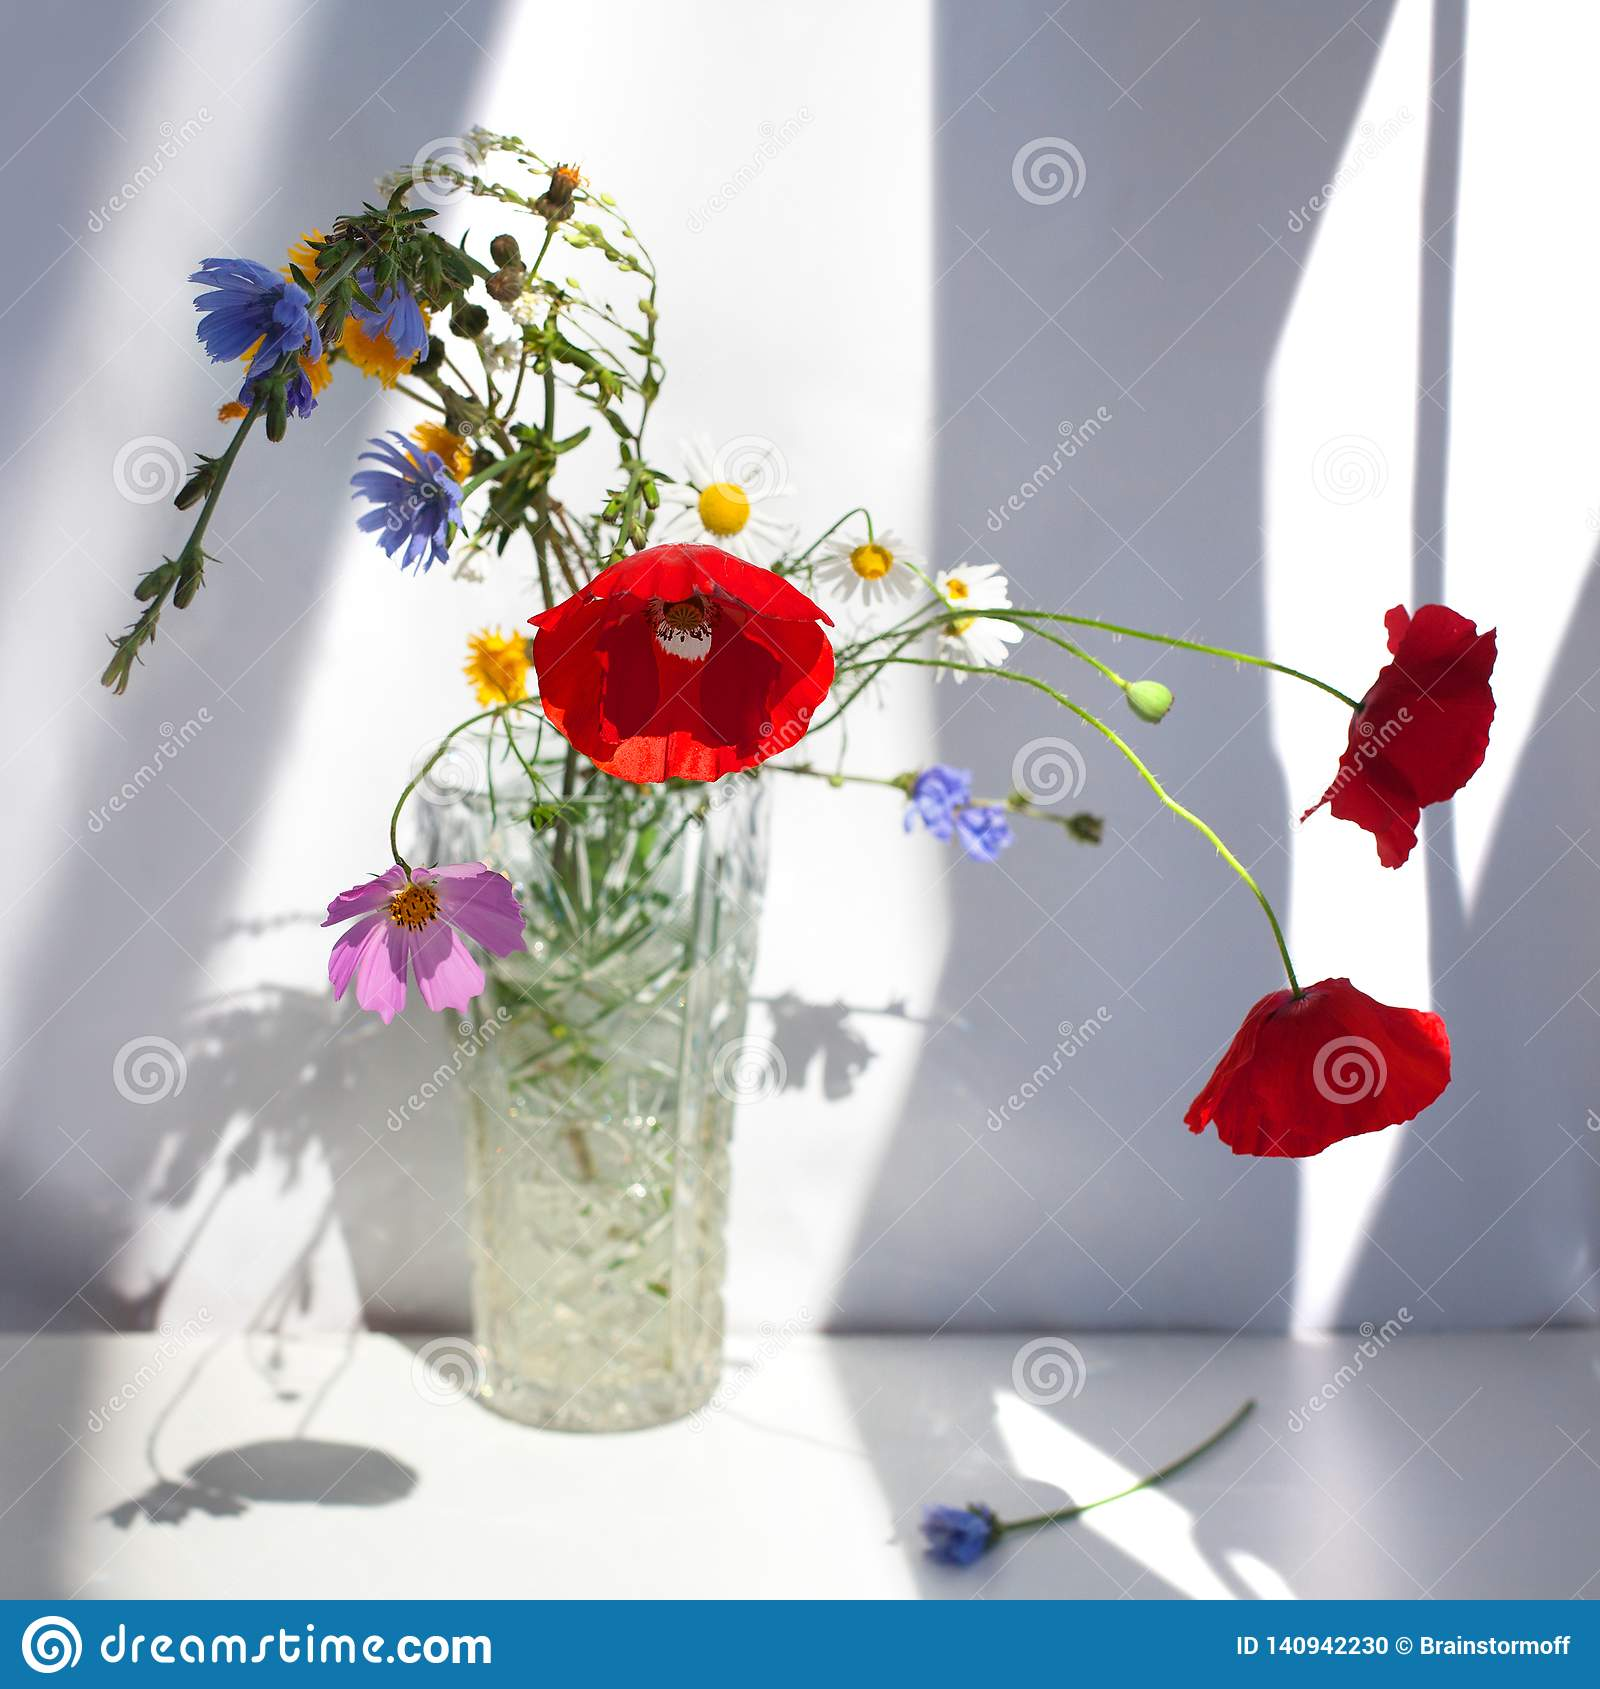 Bouquet of three red poppy flowers and different wildflowers in crystal vase with water on white table with contrast sun light and